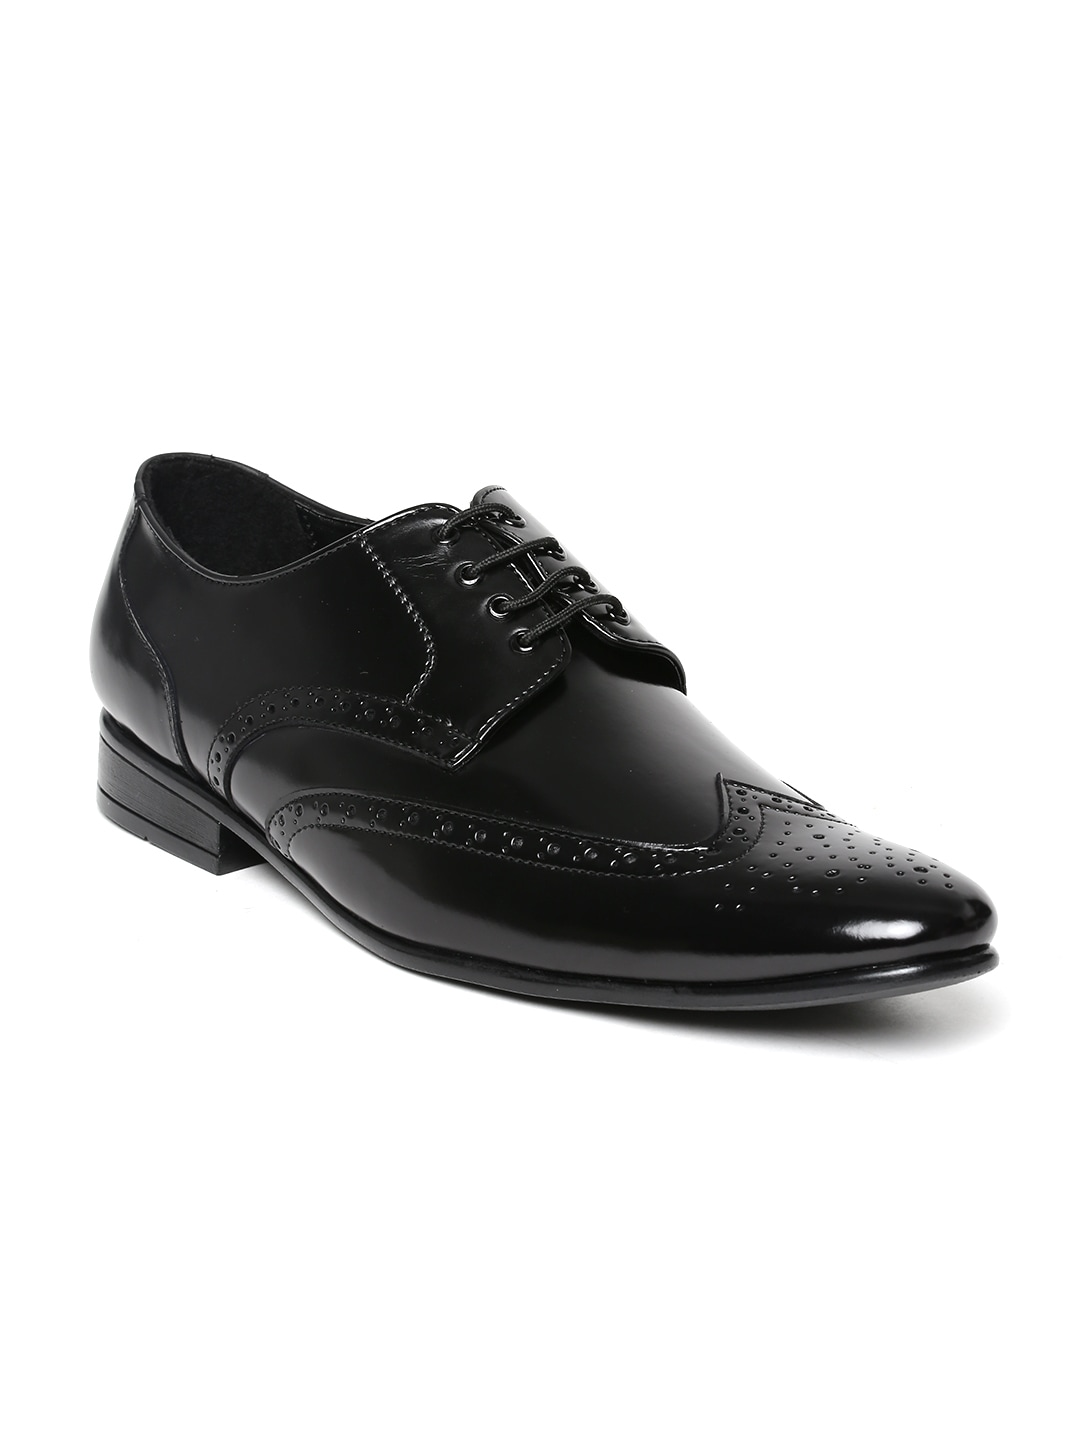 Get San Frissco Black Formal Men's  Shoes Online At Best Price